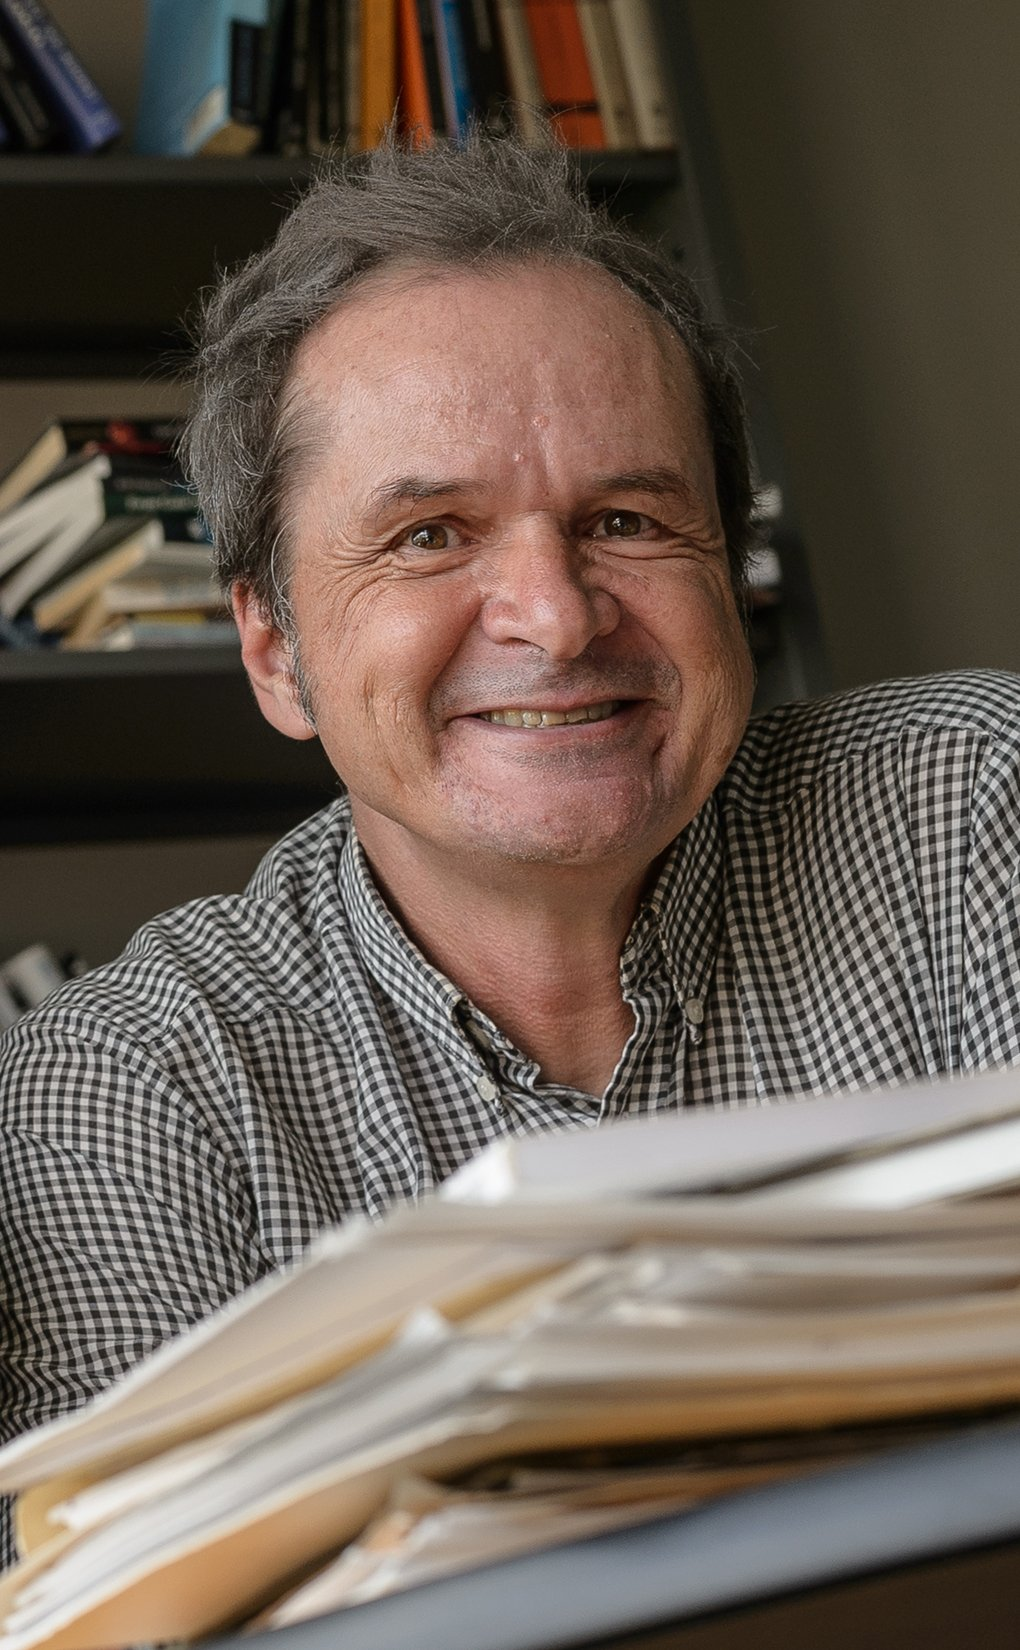 Adrian Lenardic (Photo by Jeff Fitlow/Rice University)